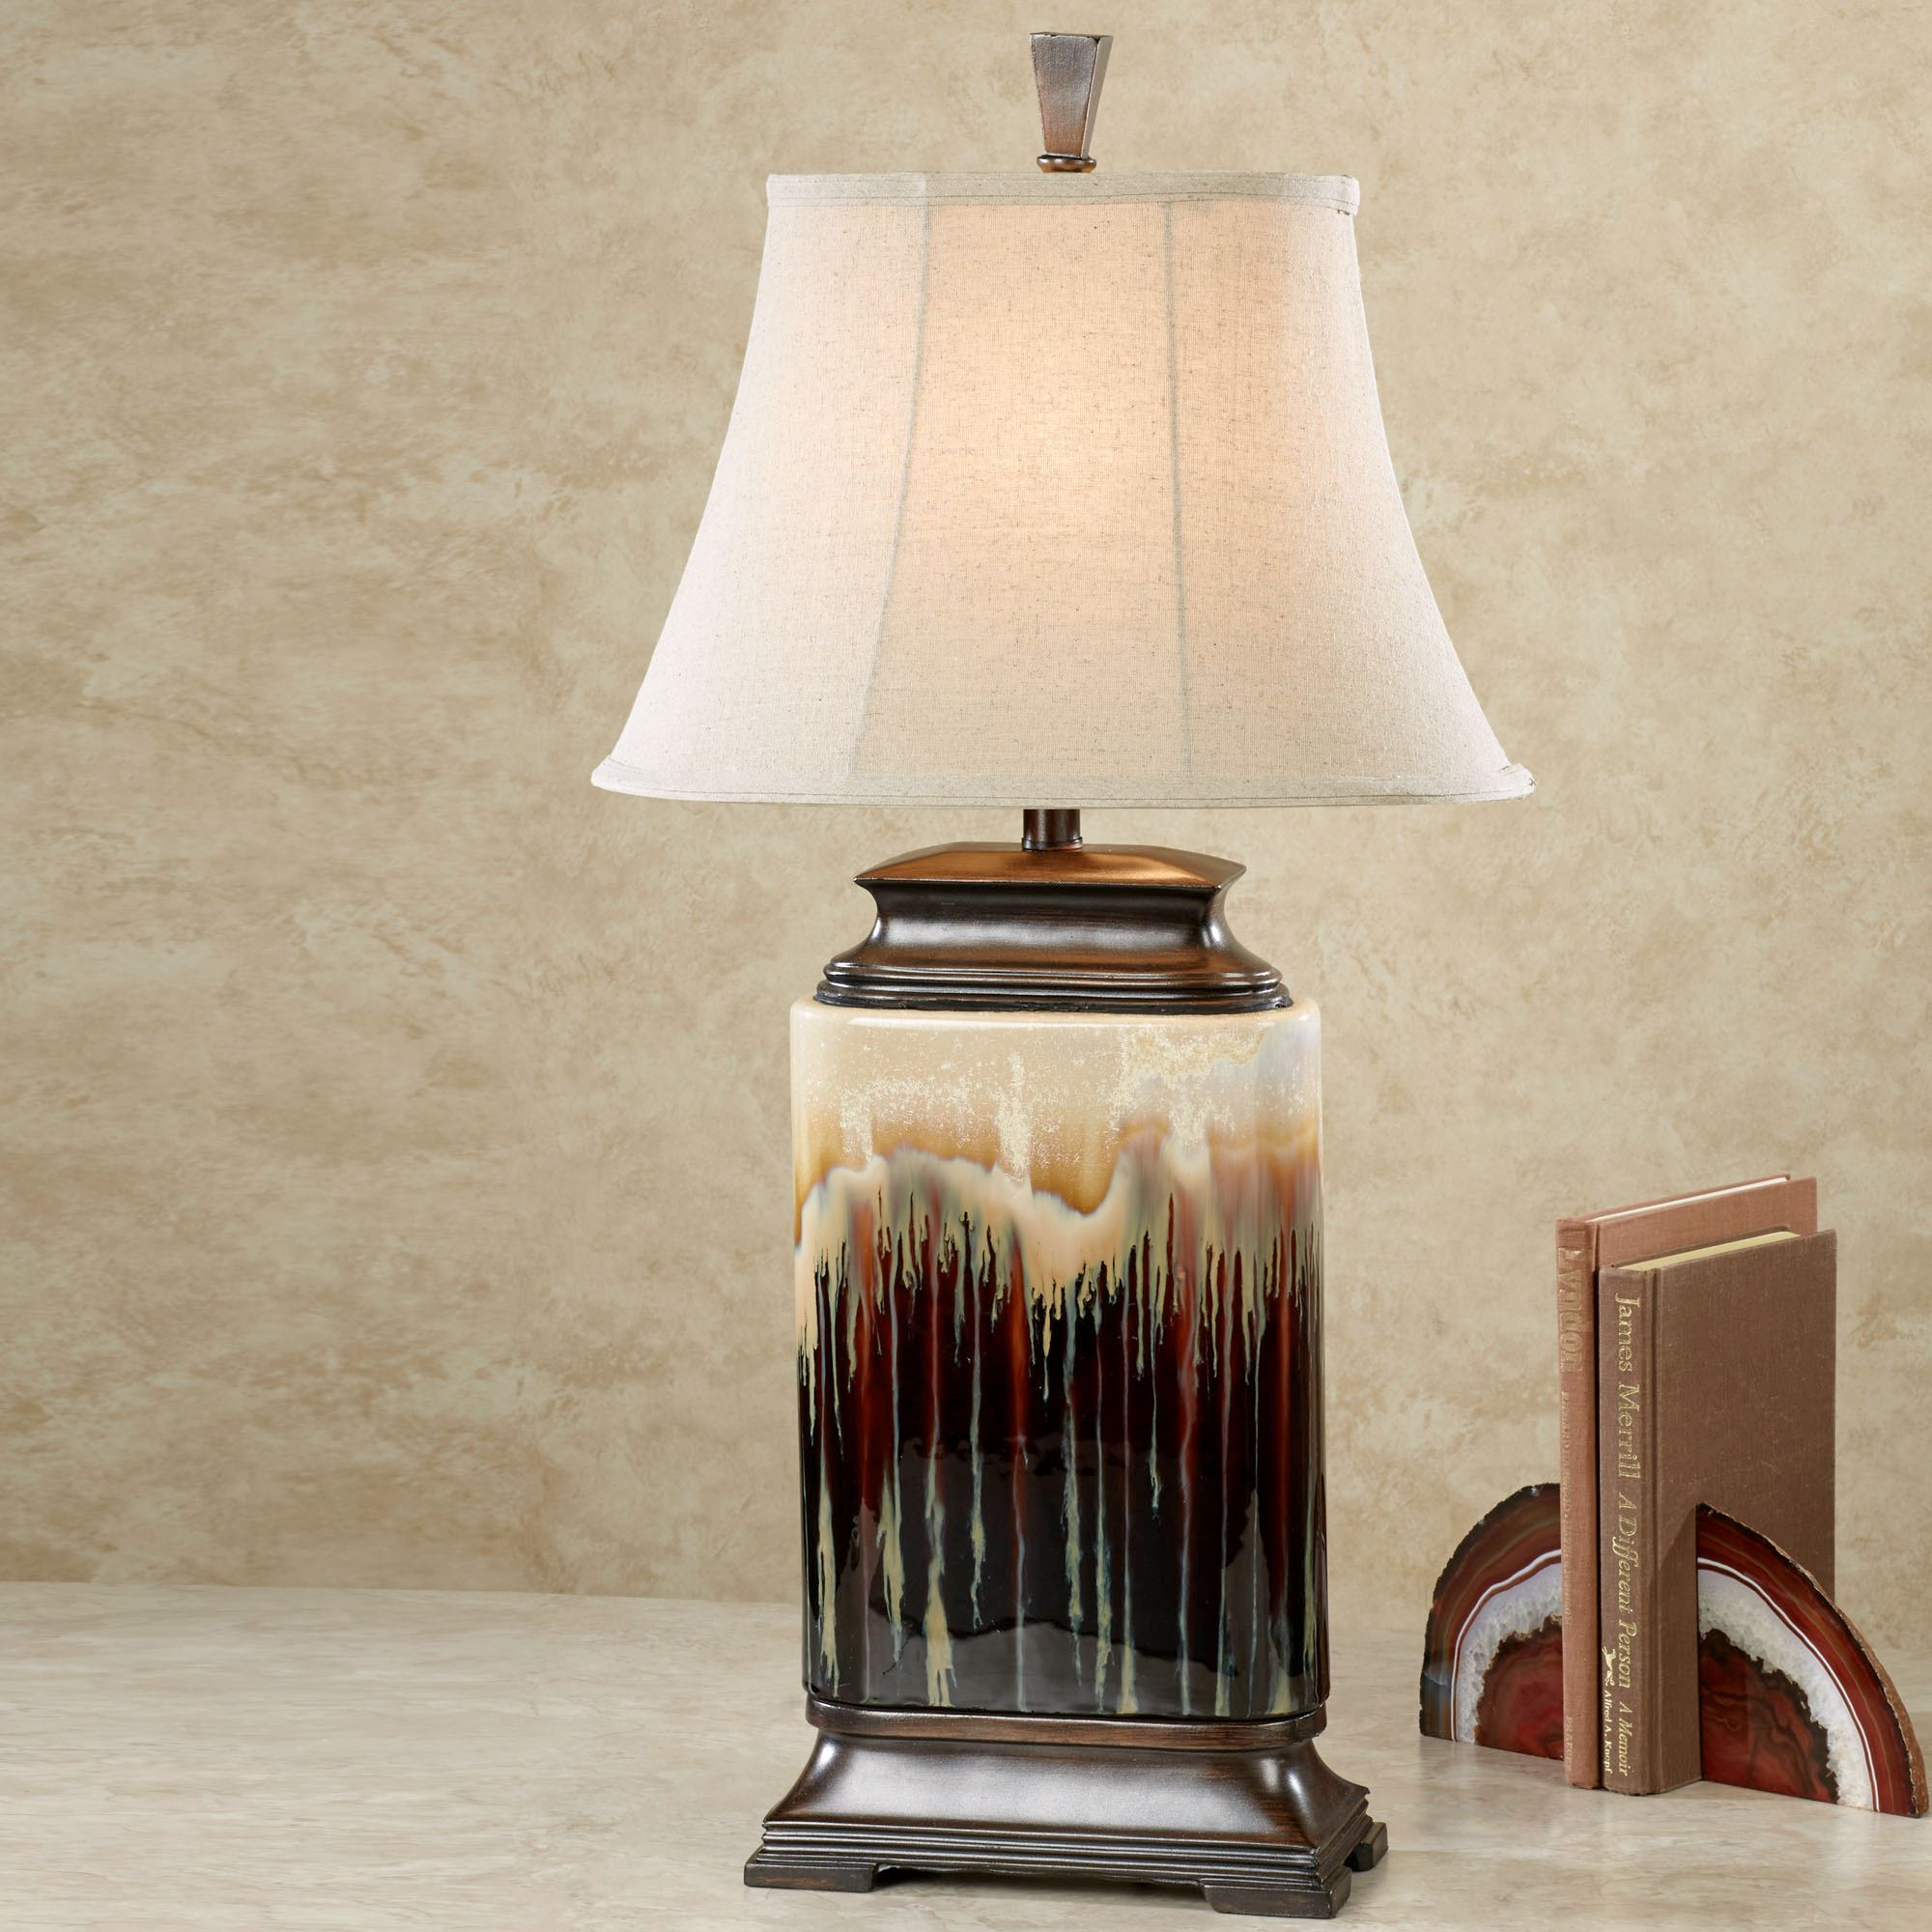 waterfall lamp photo - 4